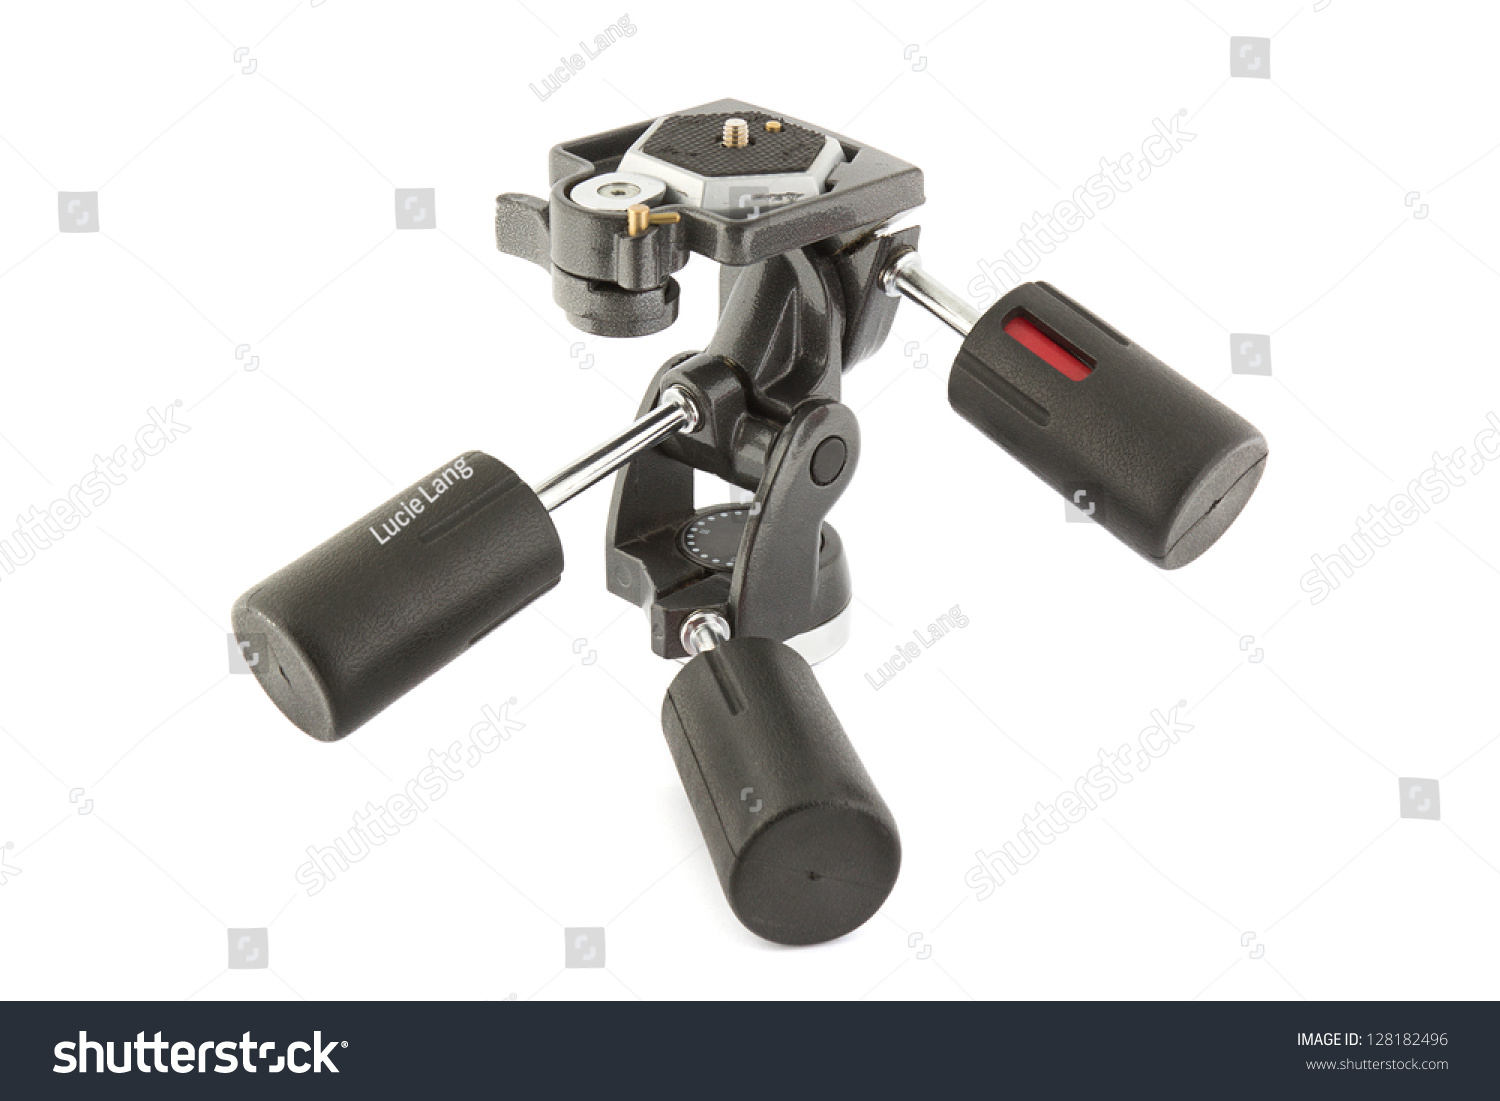 3 Way Pan Tilt Tripod Head On A White Background Stock Photo 128182496 : Shutterstock